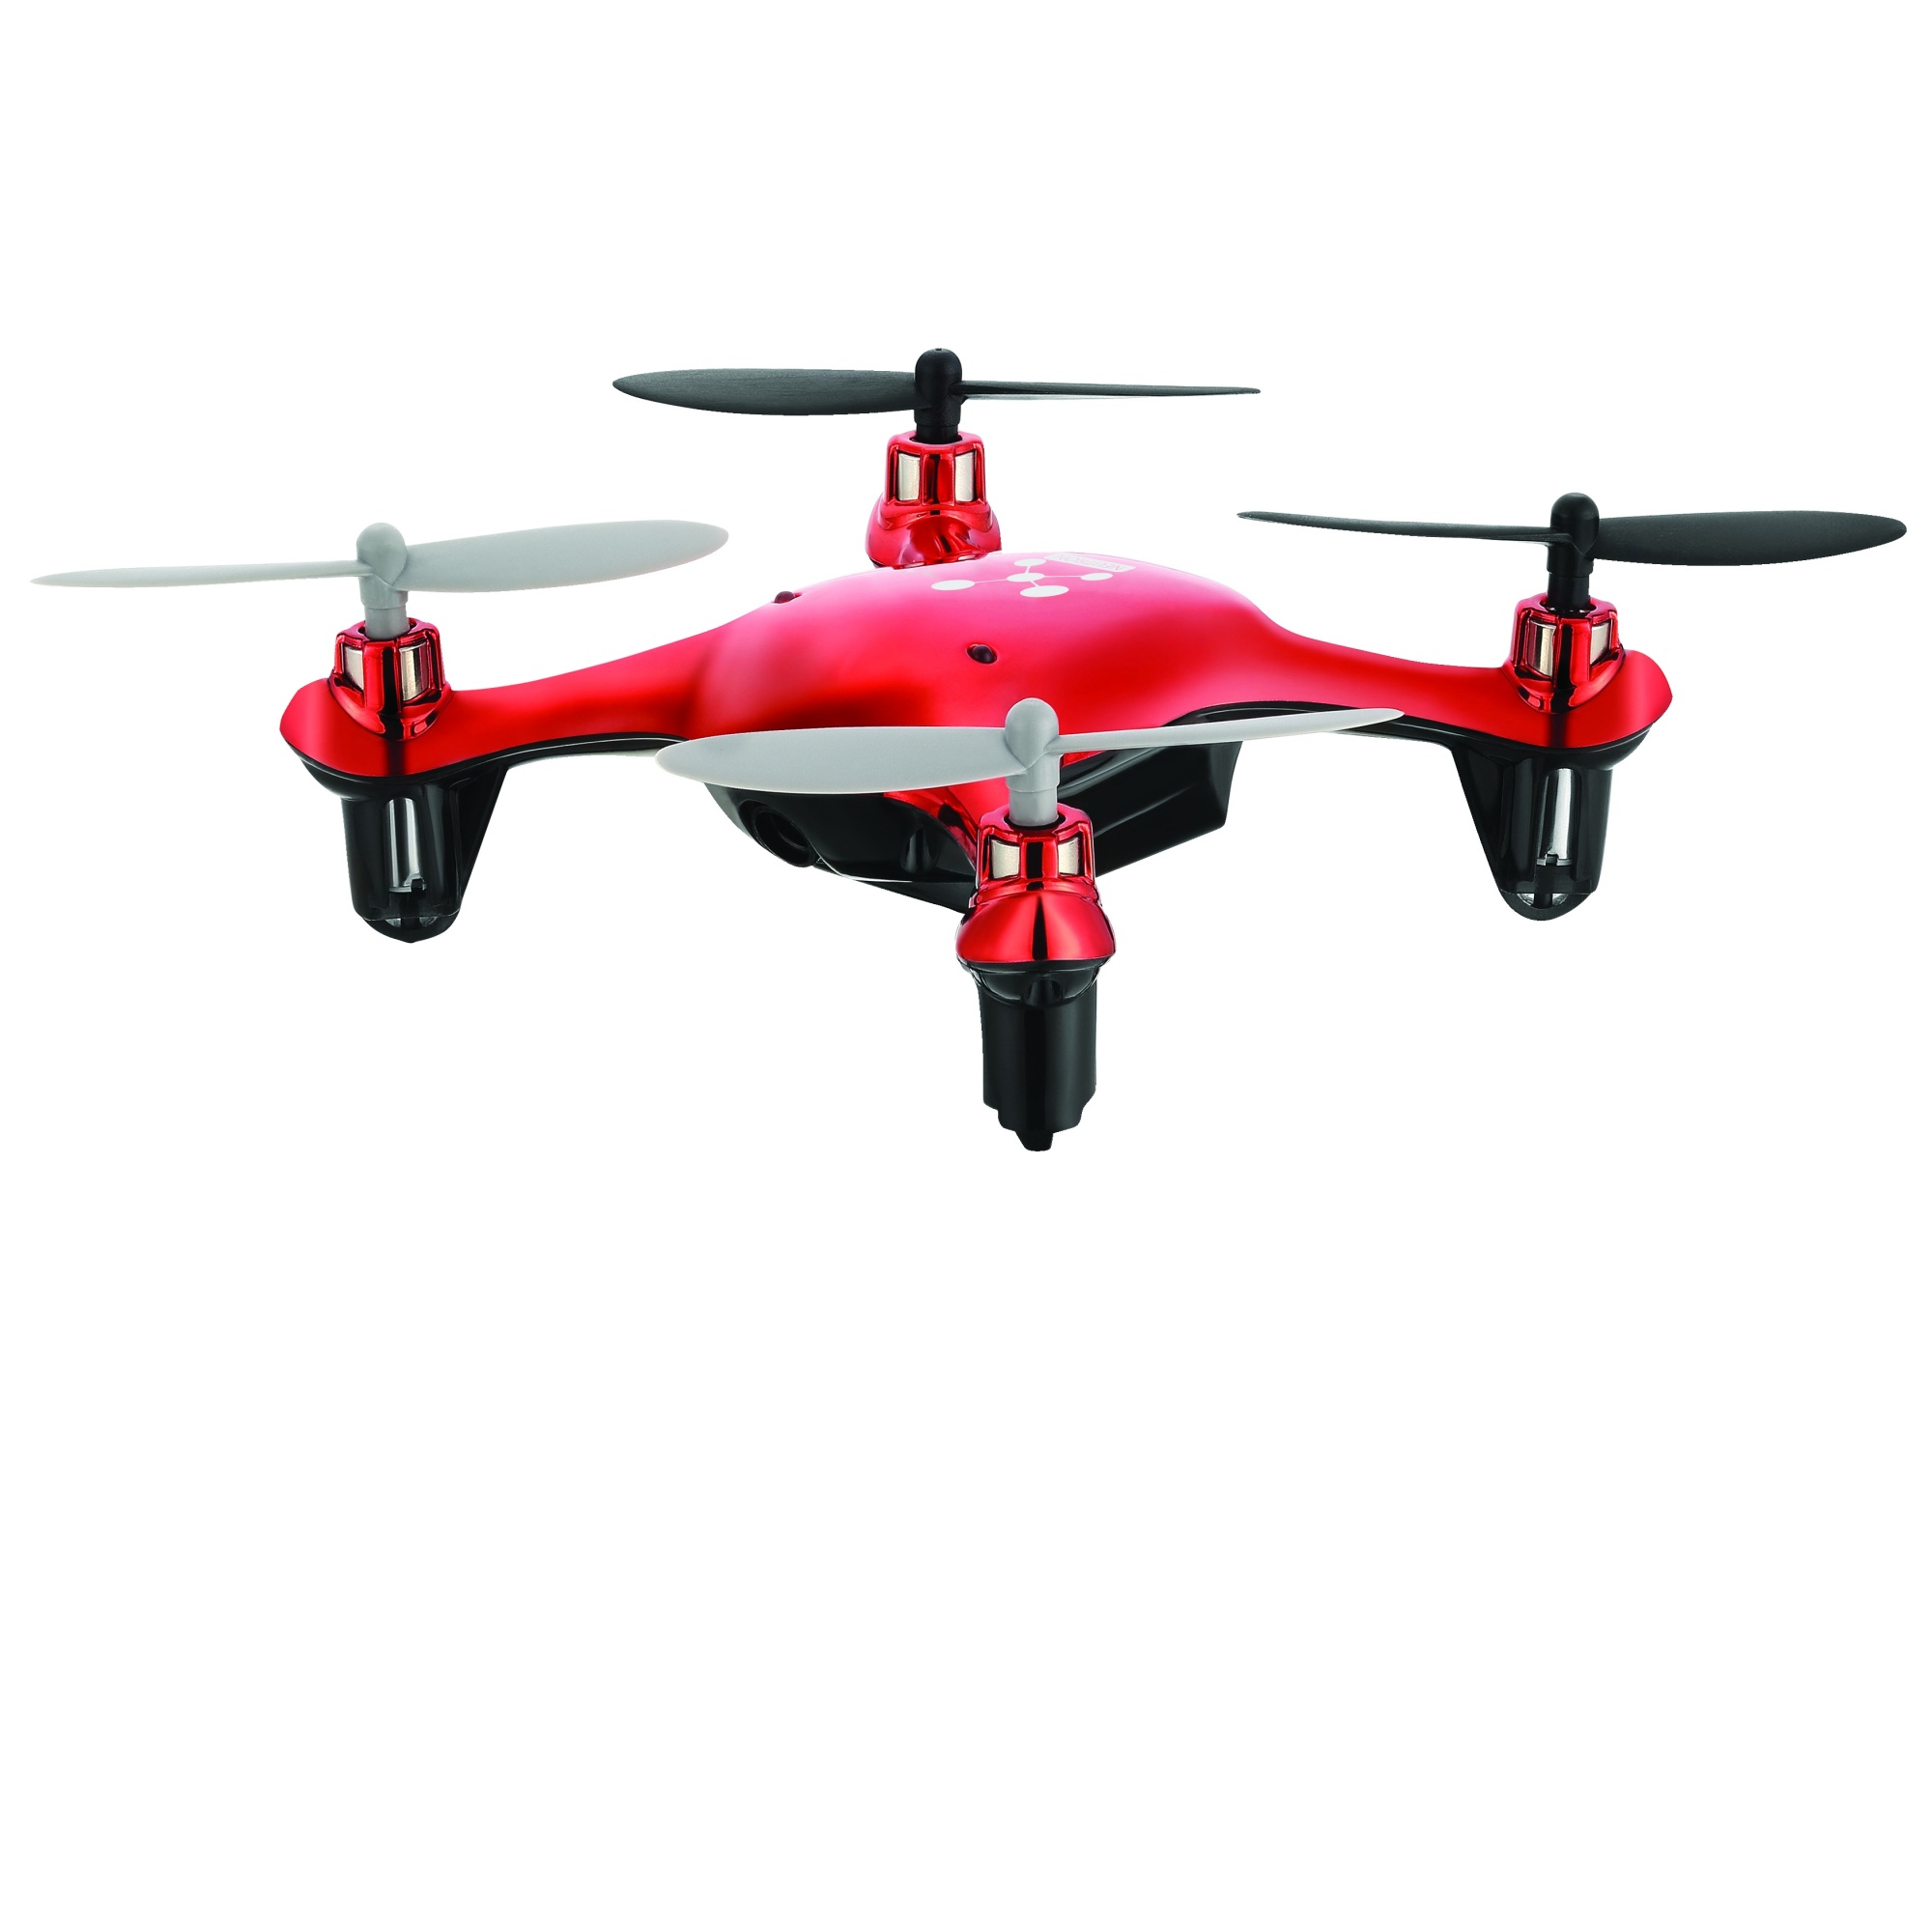 4 channel mini helicopter with 191690704571 on Watch in addition Aviation besides Esky 500 6 Channel Advanced Flybarless Rc Helicopter Rtf together with Cc3d as well Rc Helicopter Buy Online India.